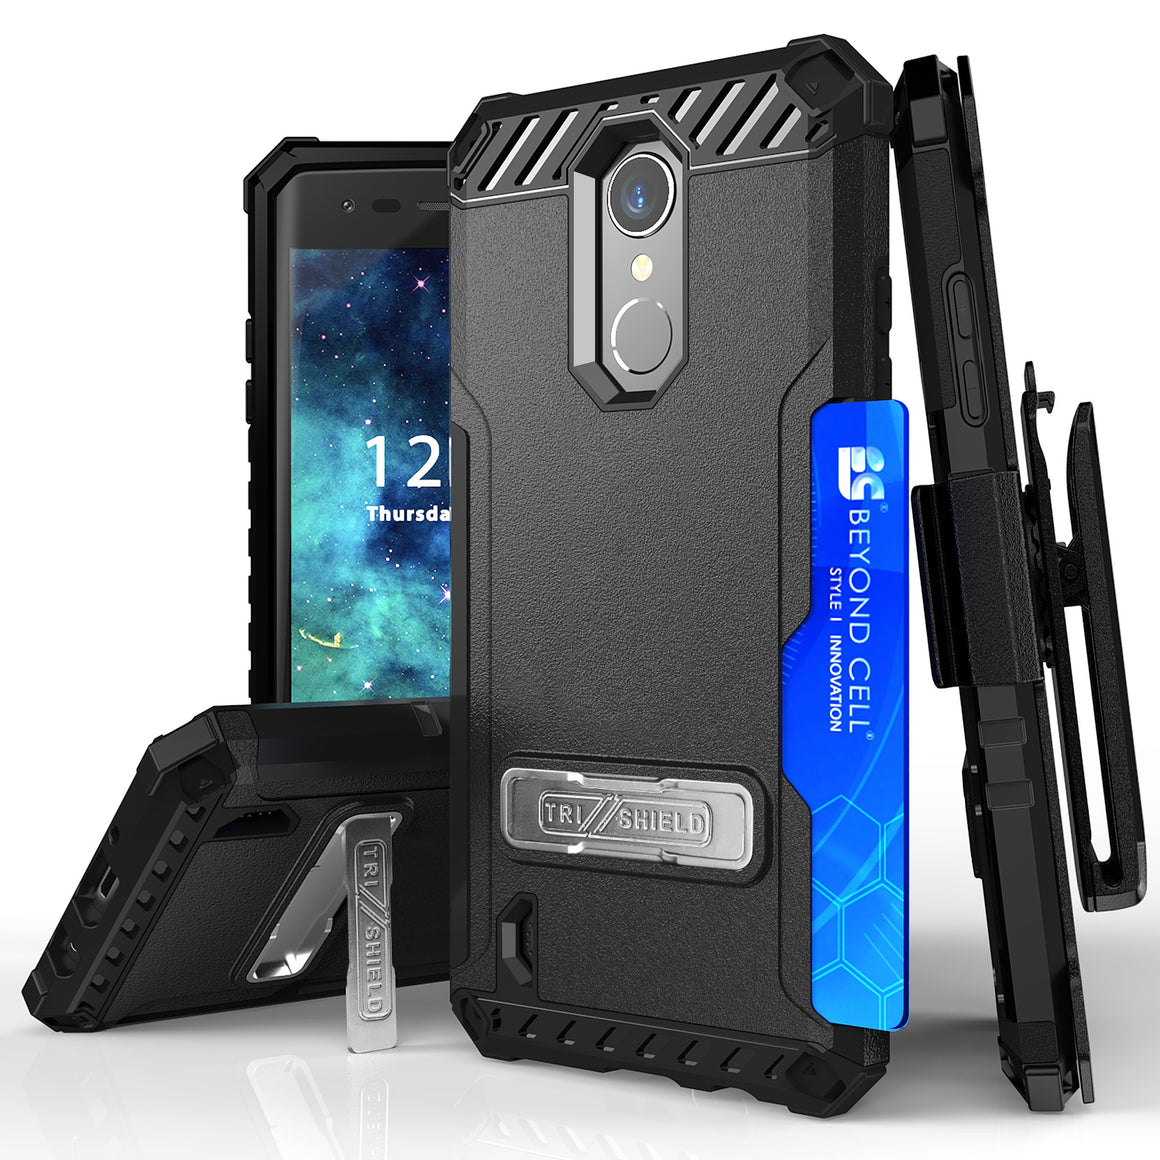 Tri Shield For LG Aristo 3 (X220)/Aristo 2+/Aristo2 /Fortune 2/Tribute Empire/Dynasty Black/Black, TPU Case,Kickstand, with Belt Clip Holster,